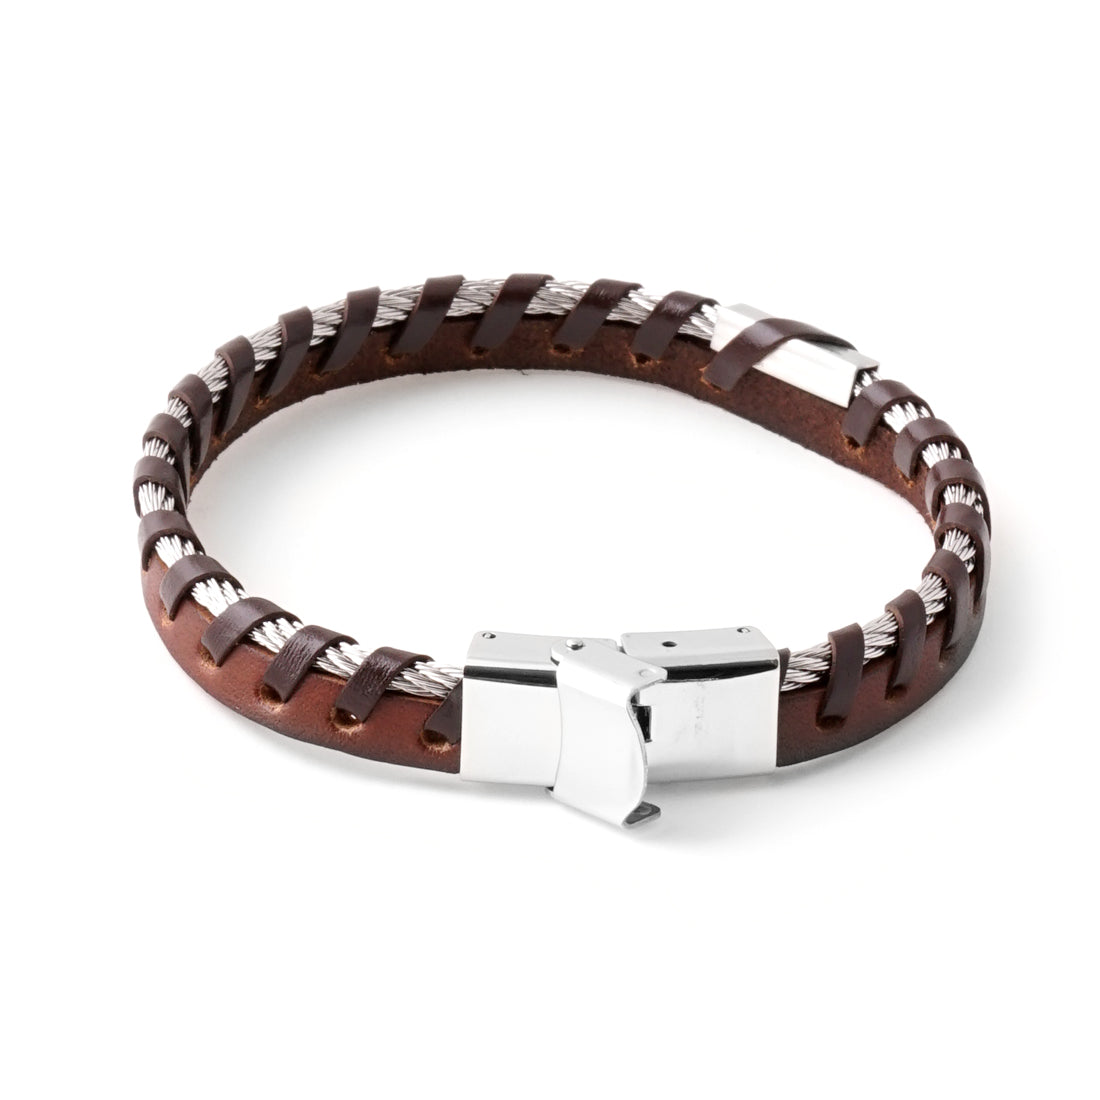 BROWN Stainless Steel Cable Leather Bracelet - URBANCREWS